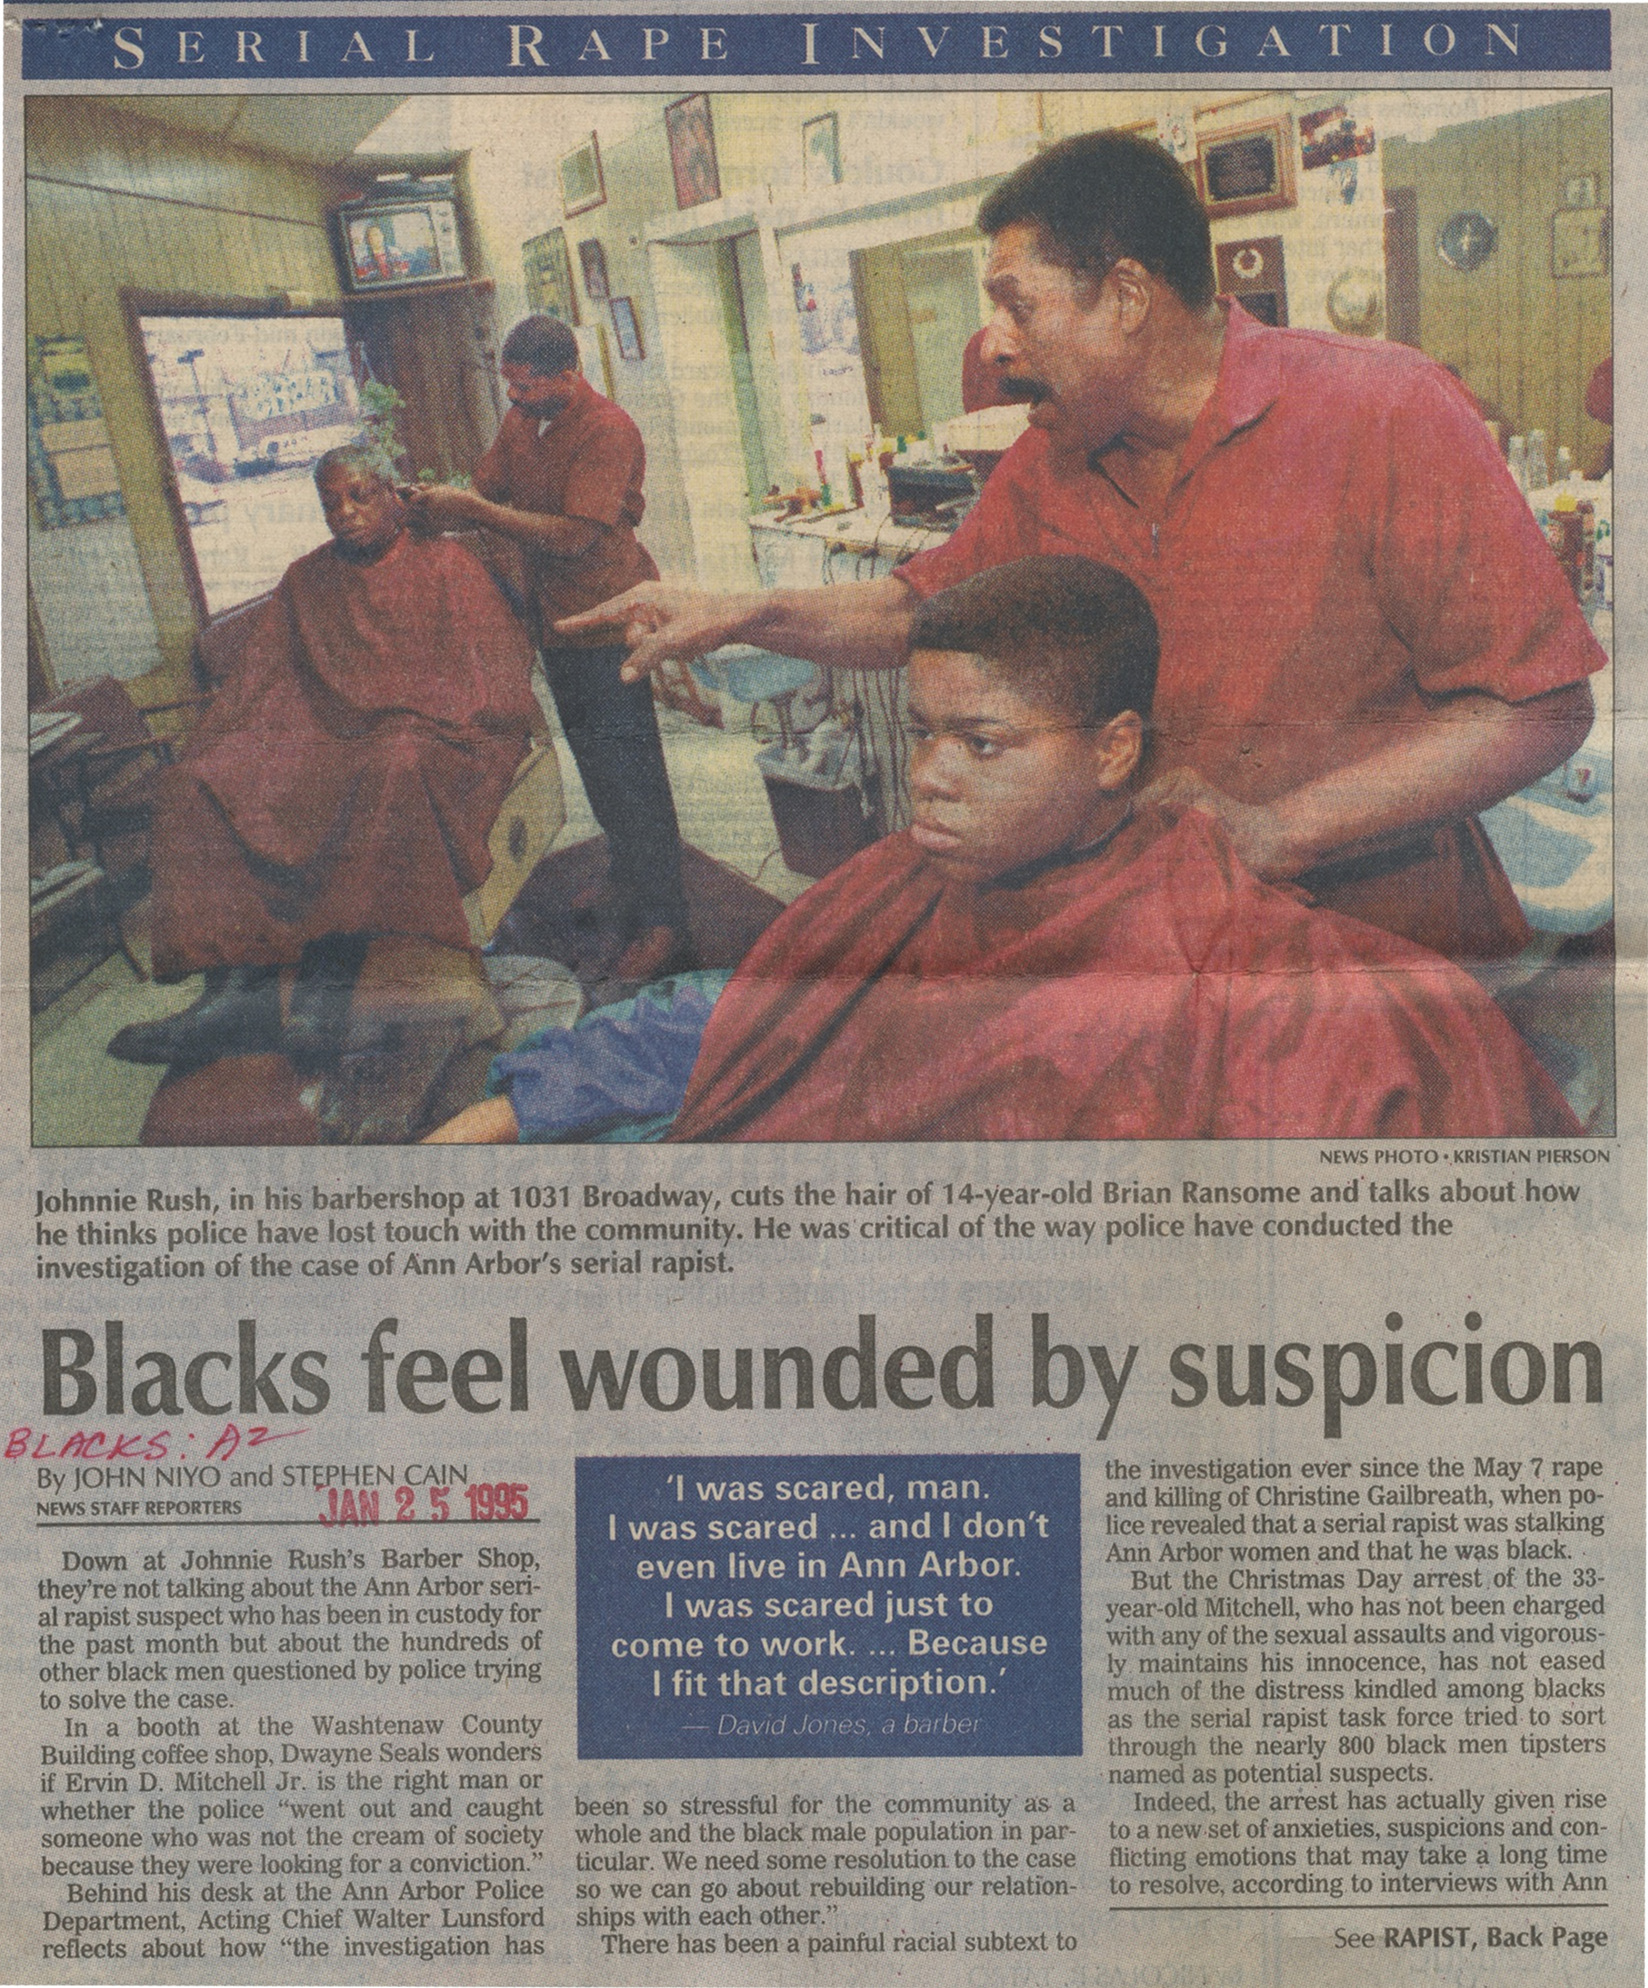 Blacks Feel Wounded By Suspicion image